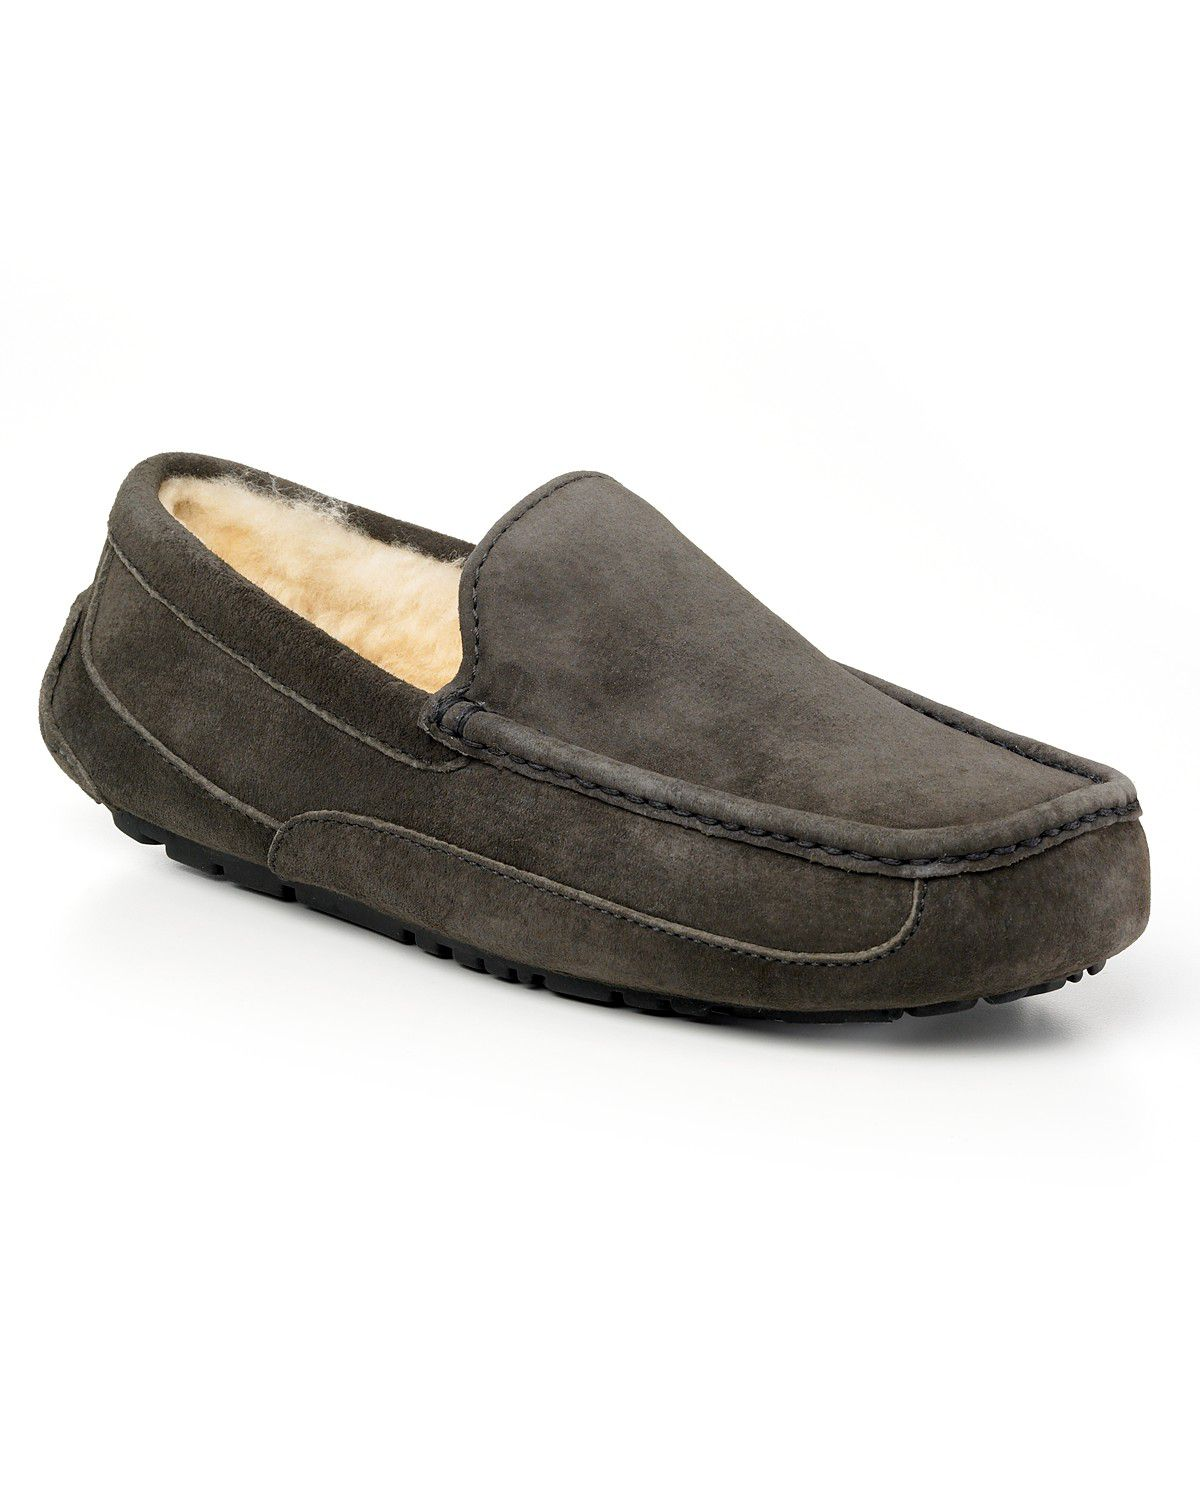 ascot ugg slippers mens